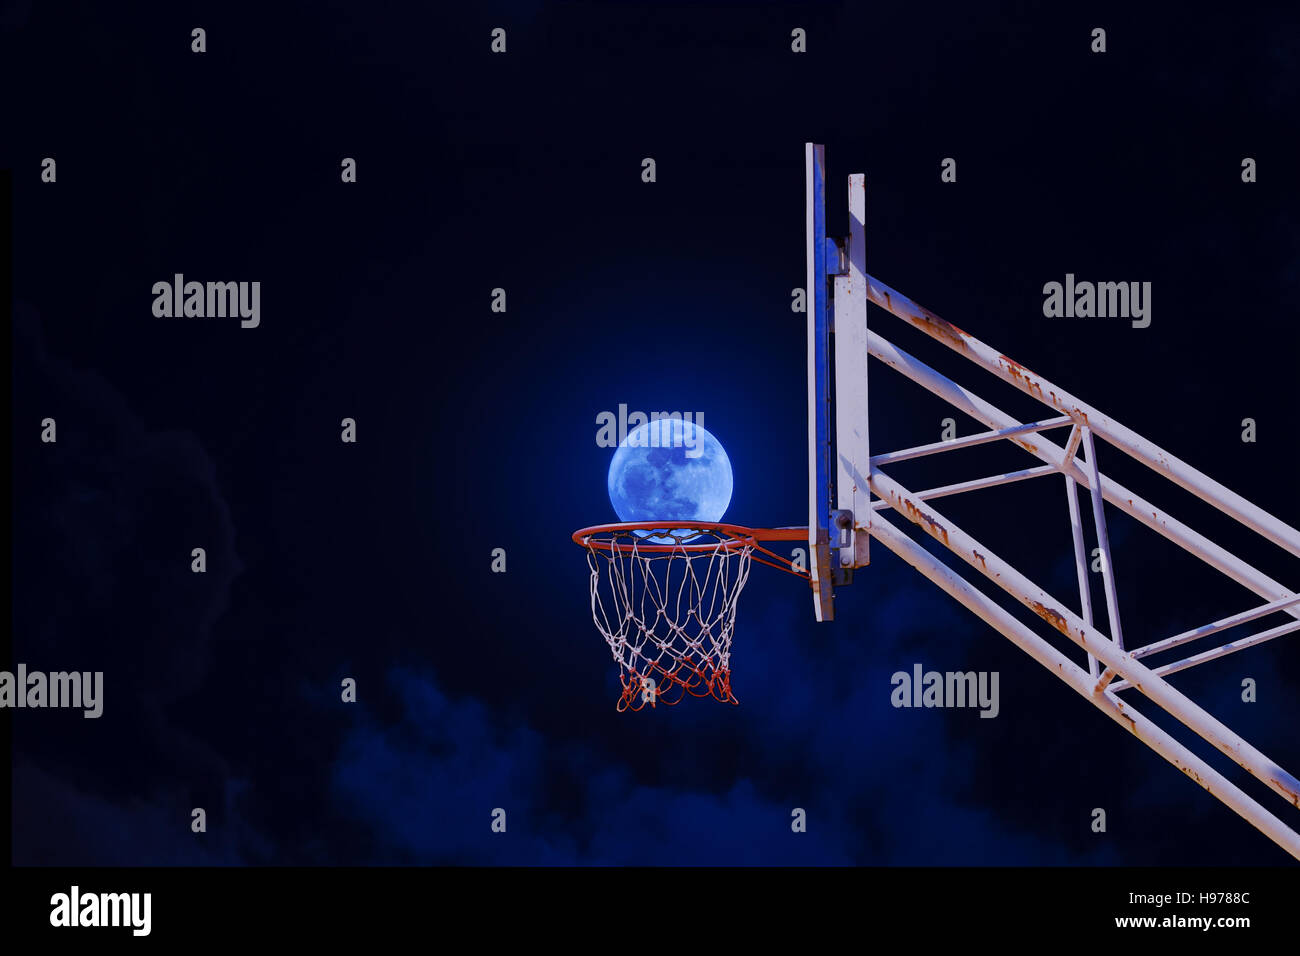 Lune dans un panier de basket-ball. Photo Stock